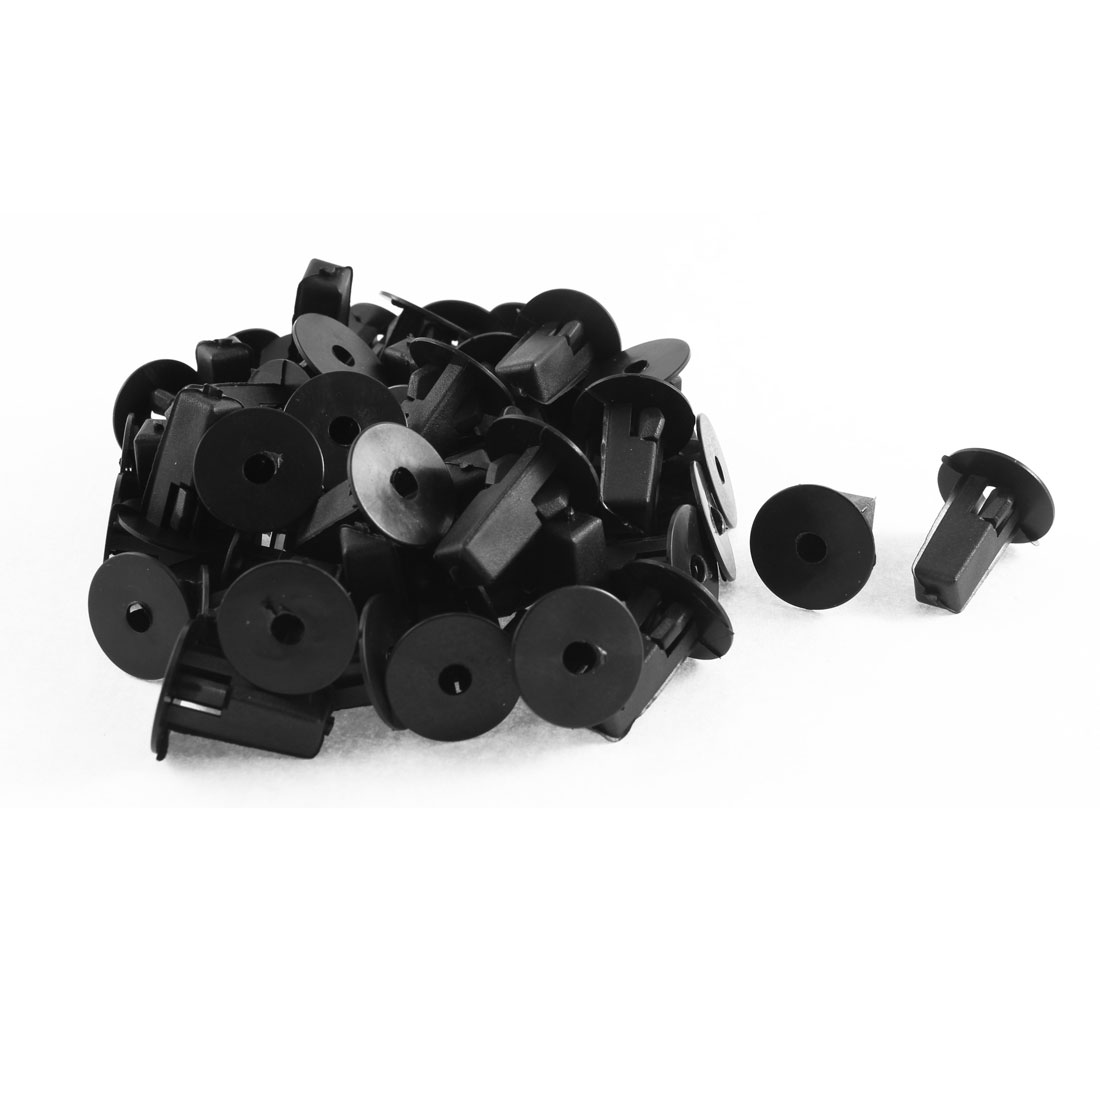 52 Pcs Black Plastic Splash Guard Defender Fastener Clips for Toyota